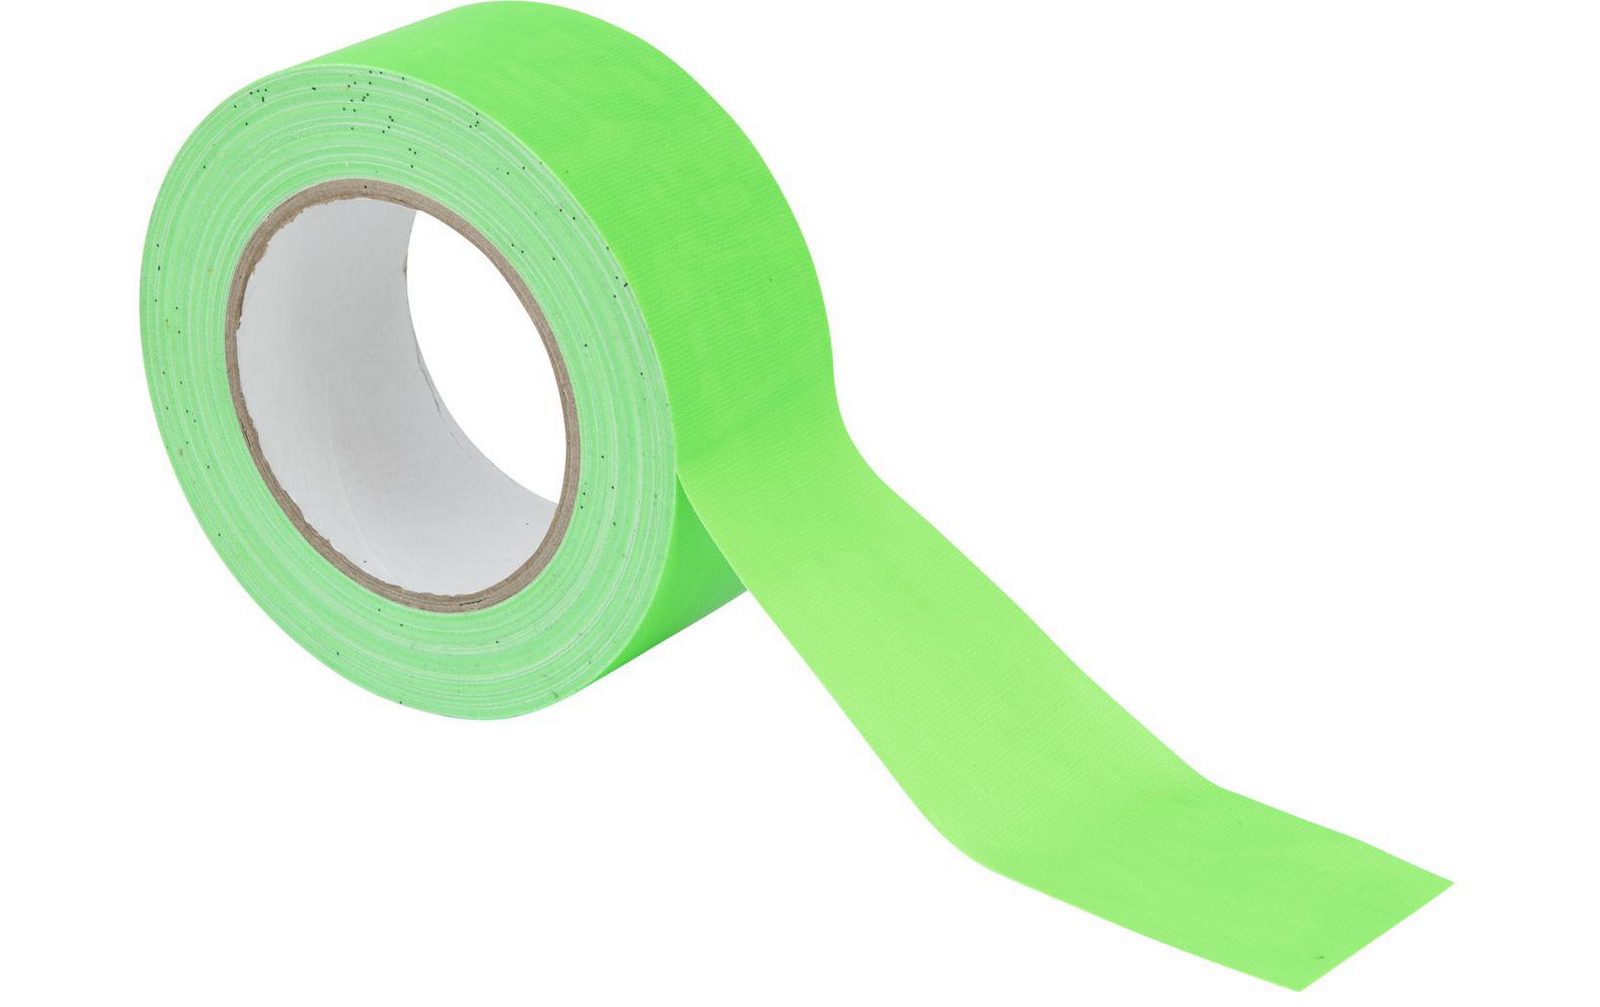 gaffa-tape-50mm-x-25m-neongra-n-uv-aktiv